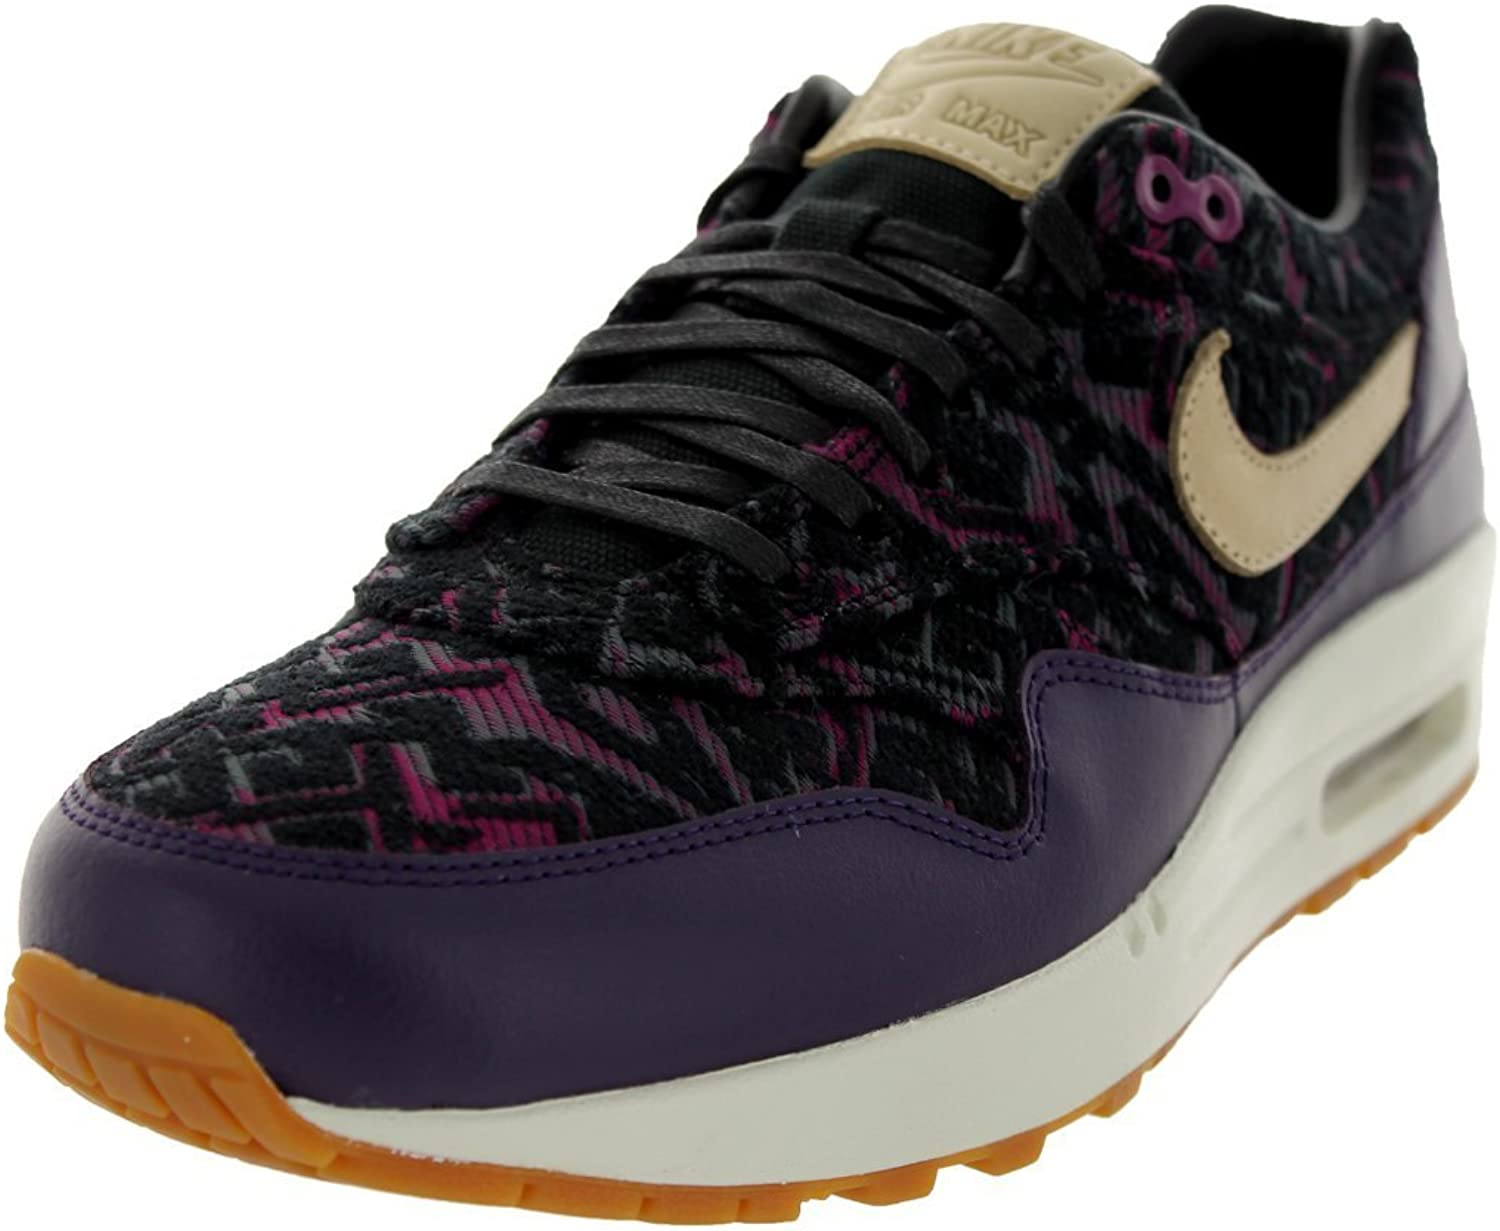 Nike Women's - Air Max 1 Premum - Purple Dynasty Black Raspberry Red